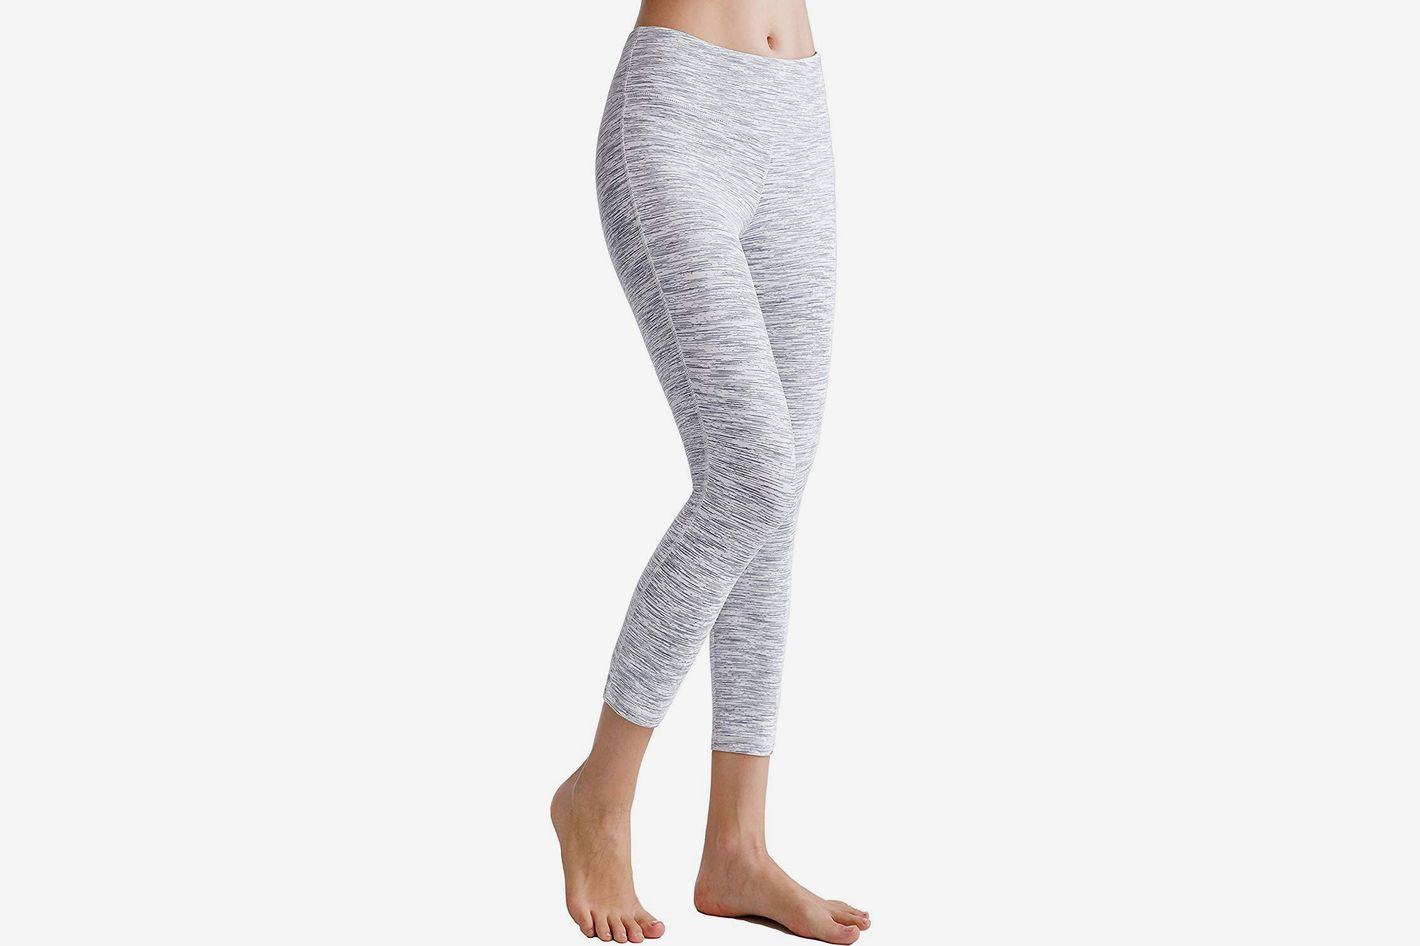 aa6e8421cc 9 Best Yoga Pants for Women 2019